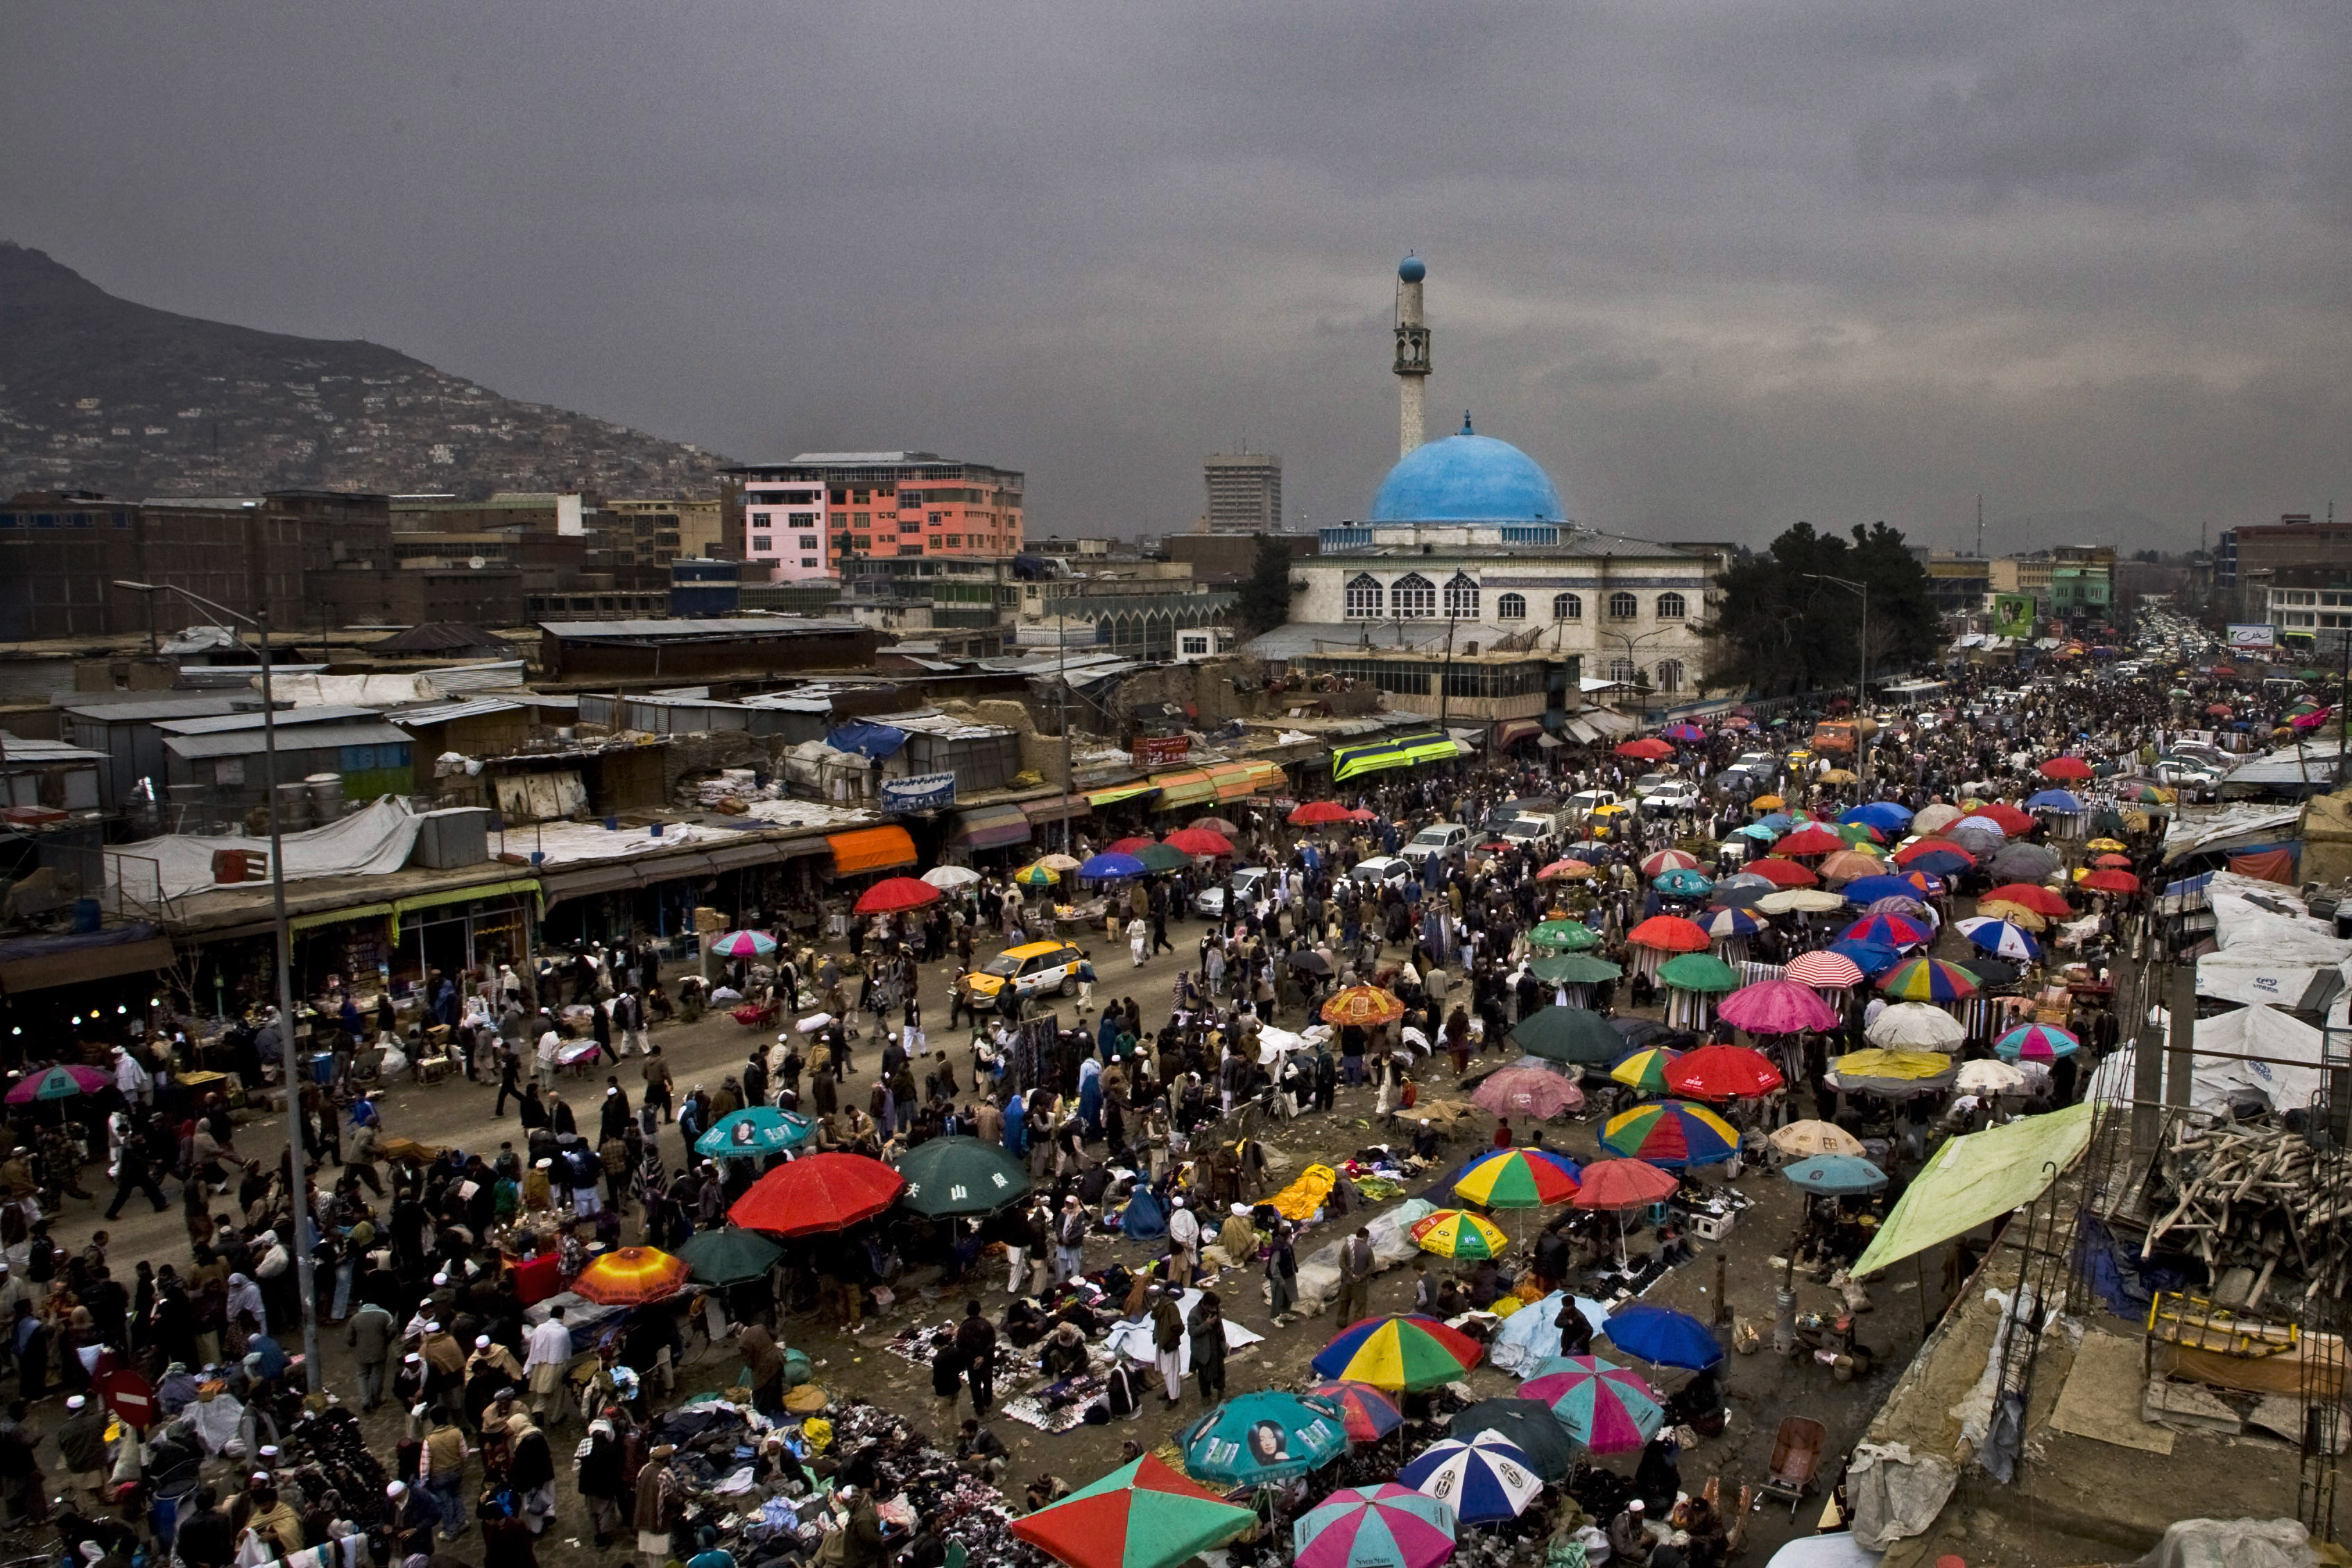 Afghans shop at an open air market a day before the celebration of the Persian New Year Nowruz in Kabul, Afghanistan. Nowruz marks the first day of spring and the beginning of the year on the Iranian calendar.